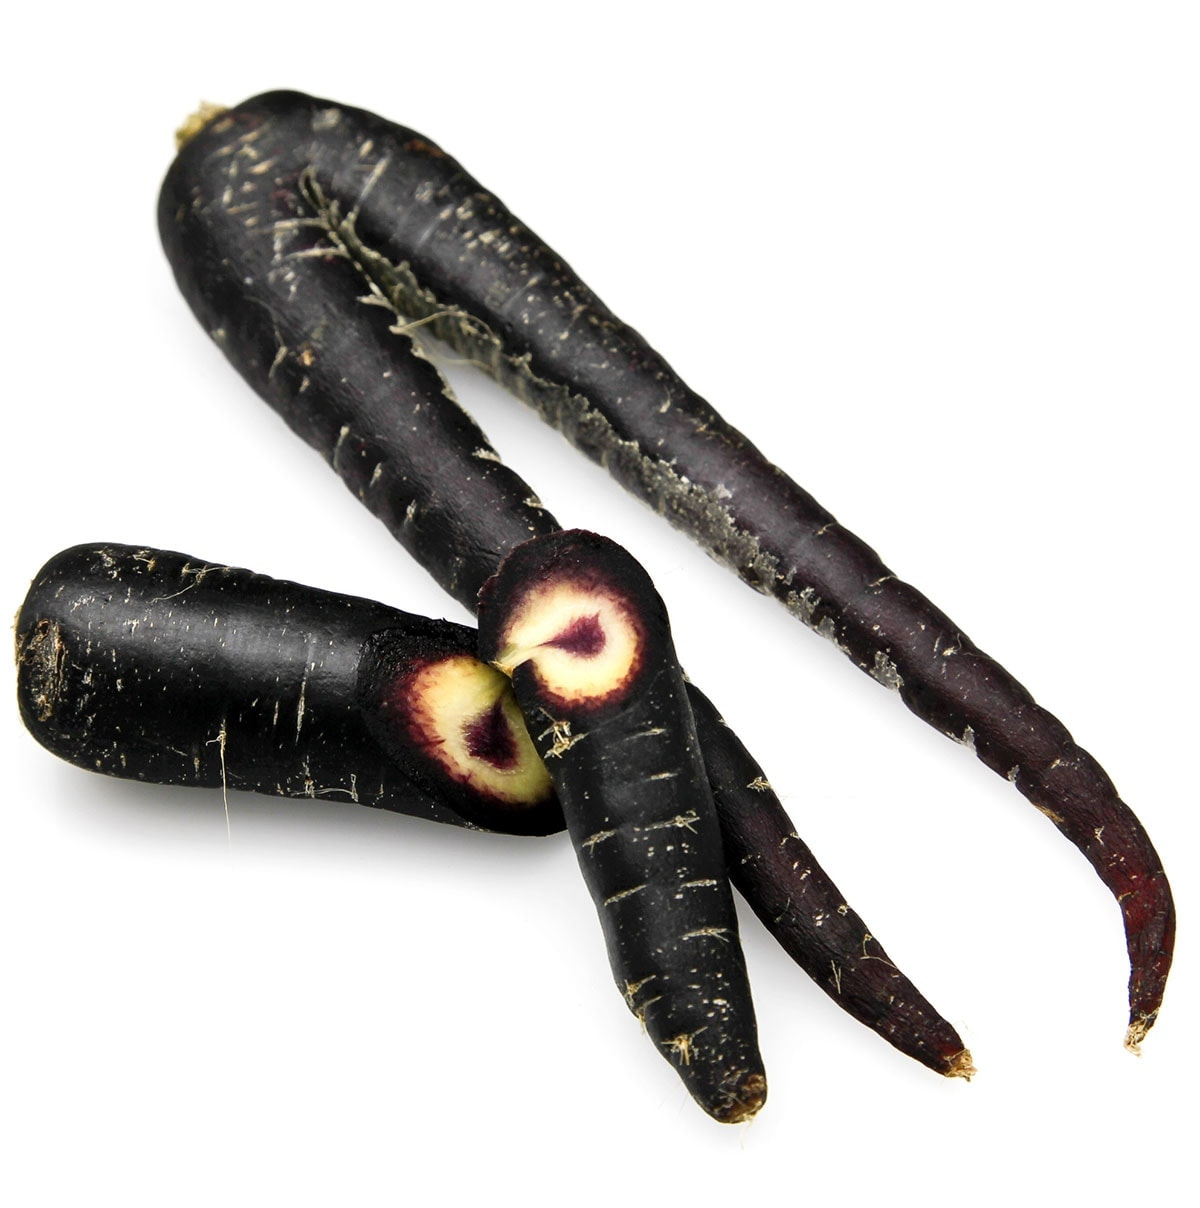 Black carrots with one sliced